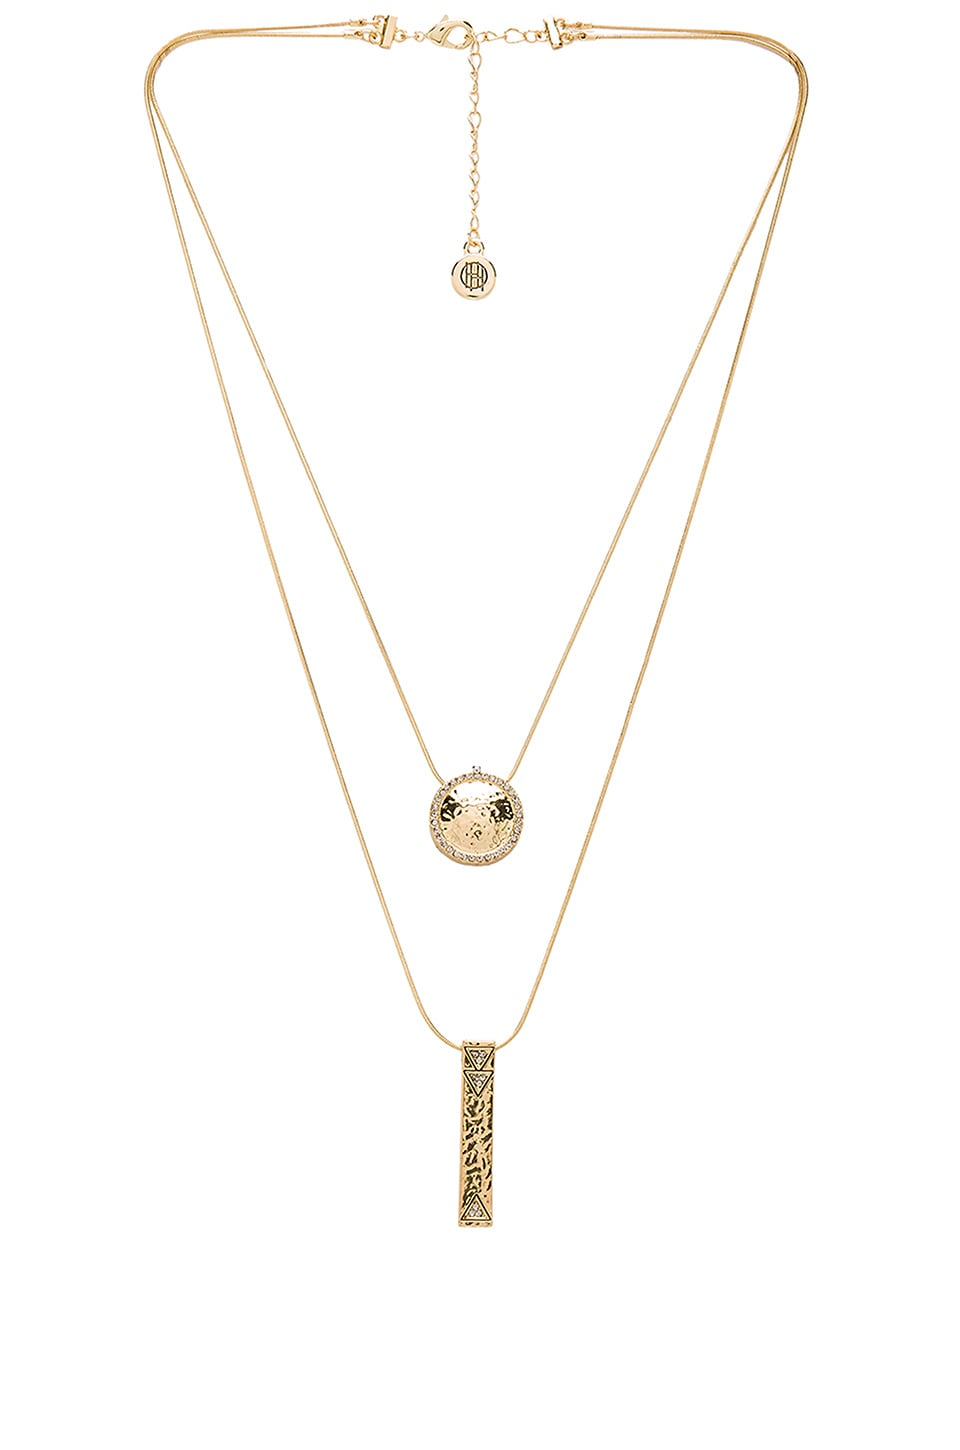 House of Harlow 1960 Scutum Double Pendant Necklace in Gold